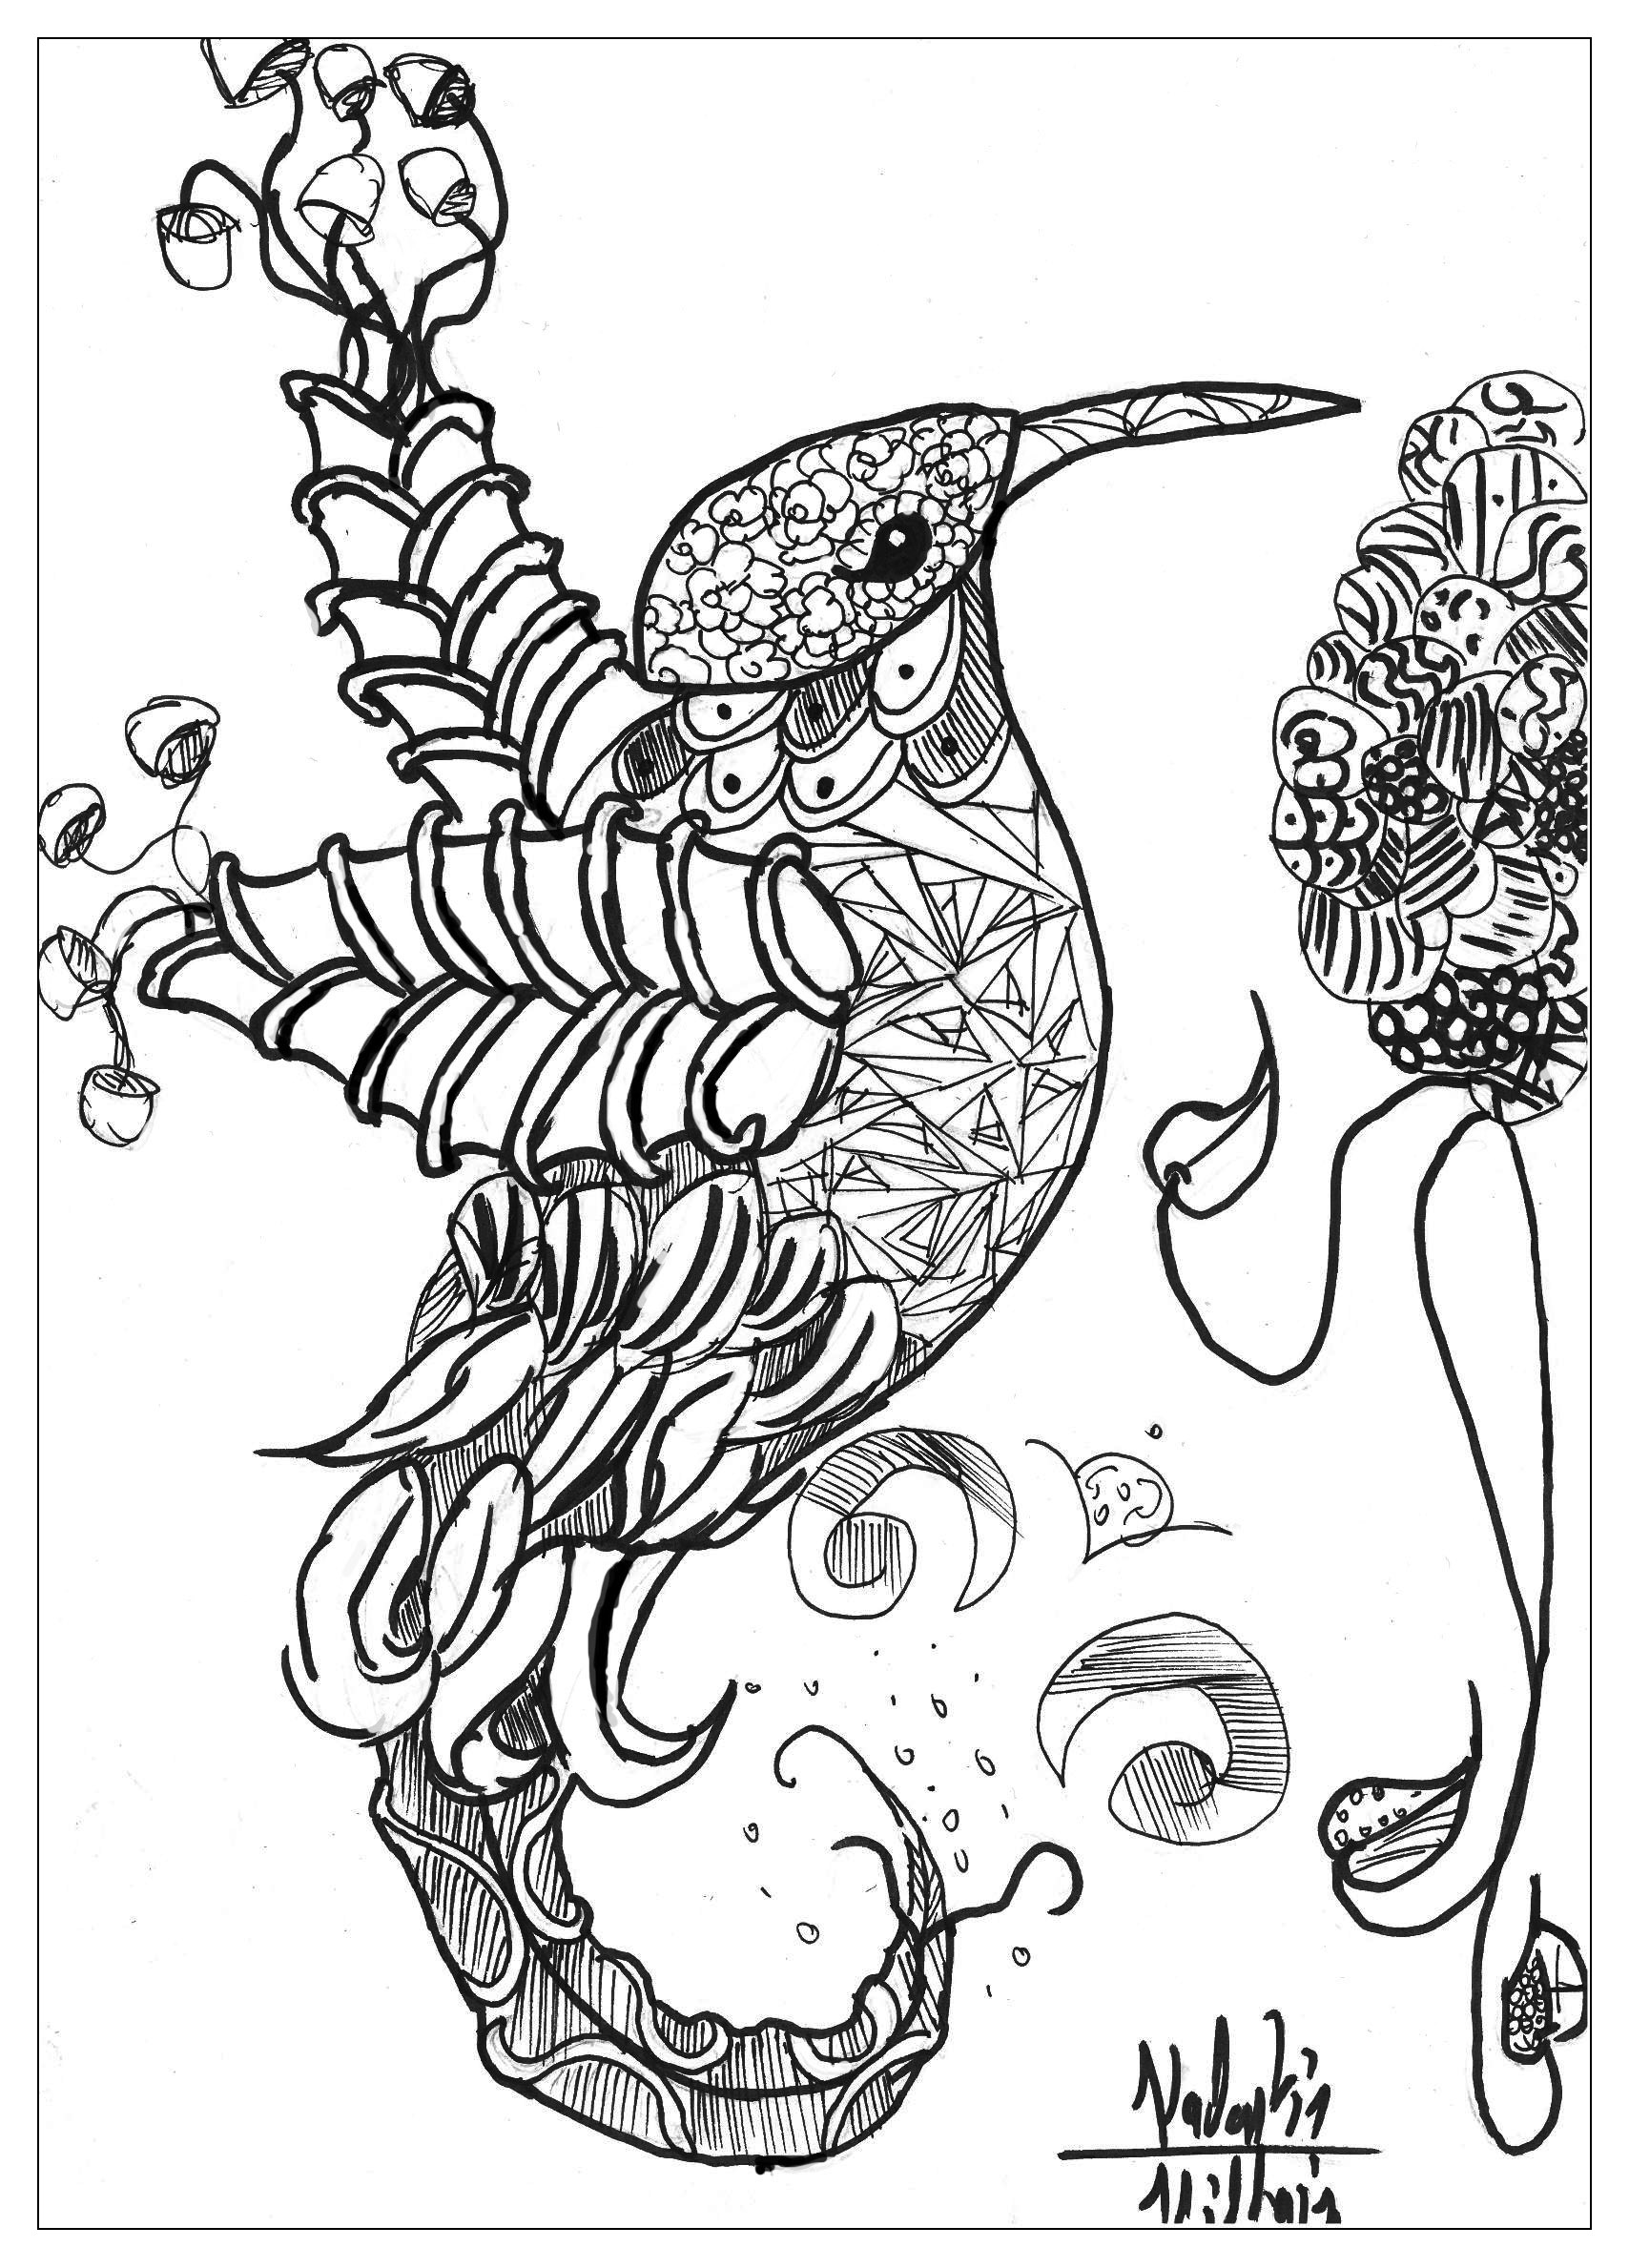 bird coloring pages for adults animals bird valentin birds adult coloring pages adults bird coloring for pages